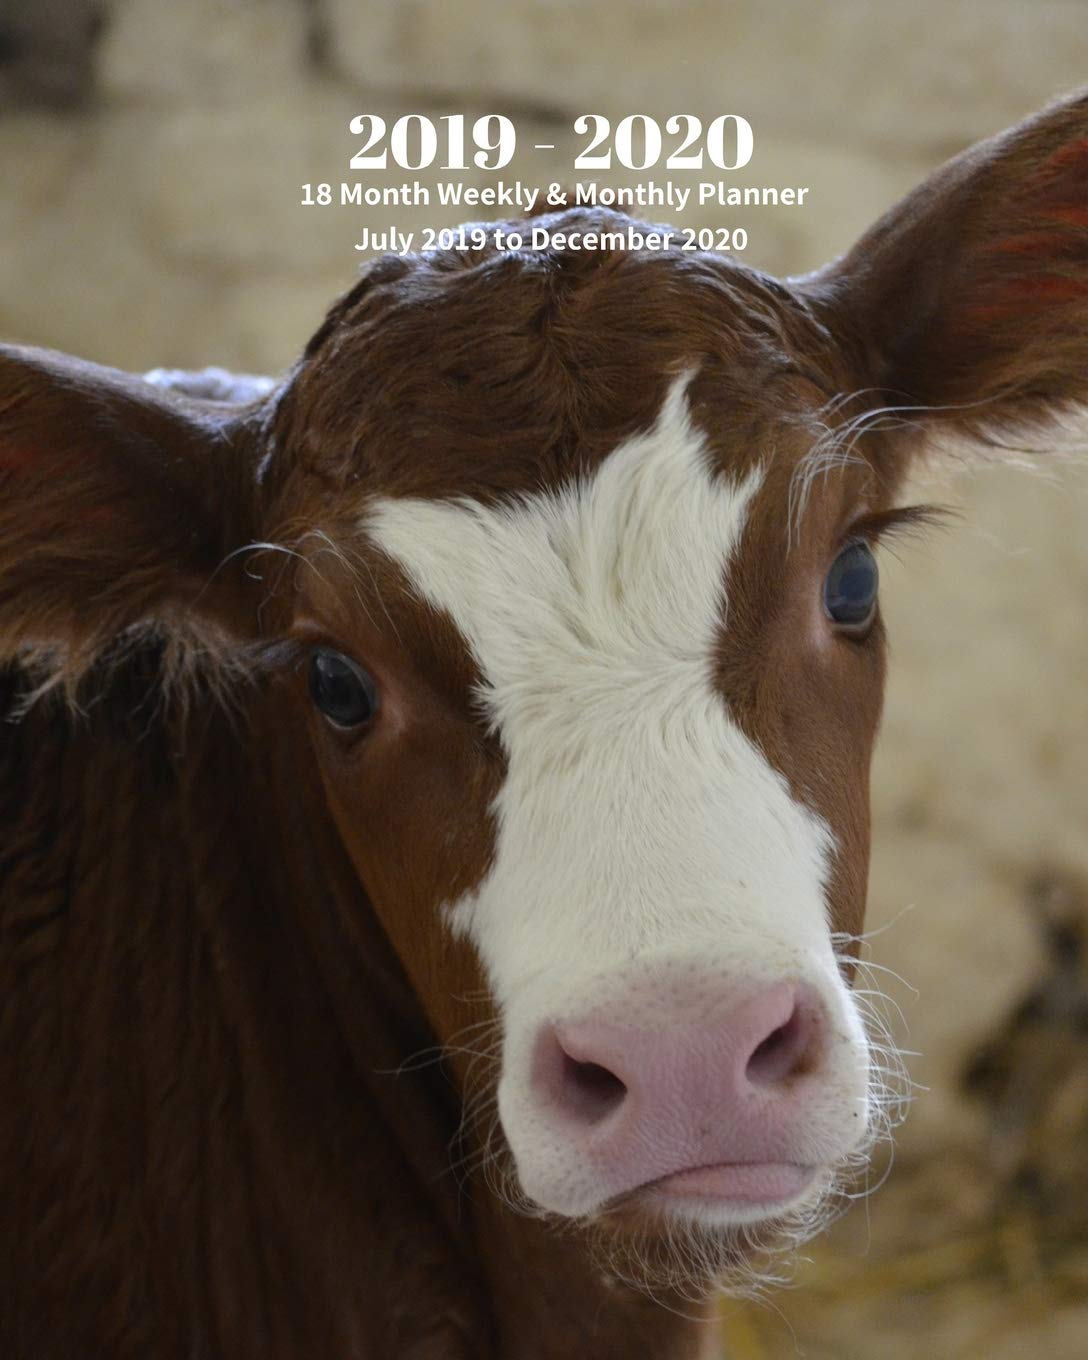 Cow Calendar December 2020 Amazon.com: 2019   2020 | 18 Month Weekly & Monthly Planner July